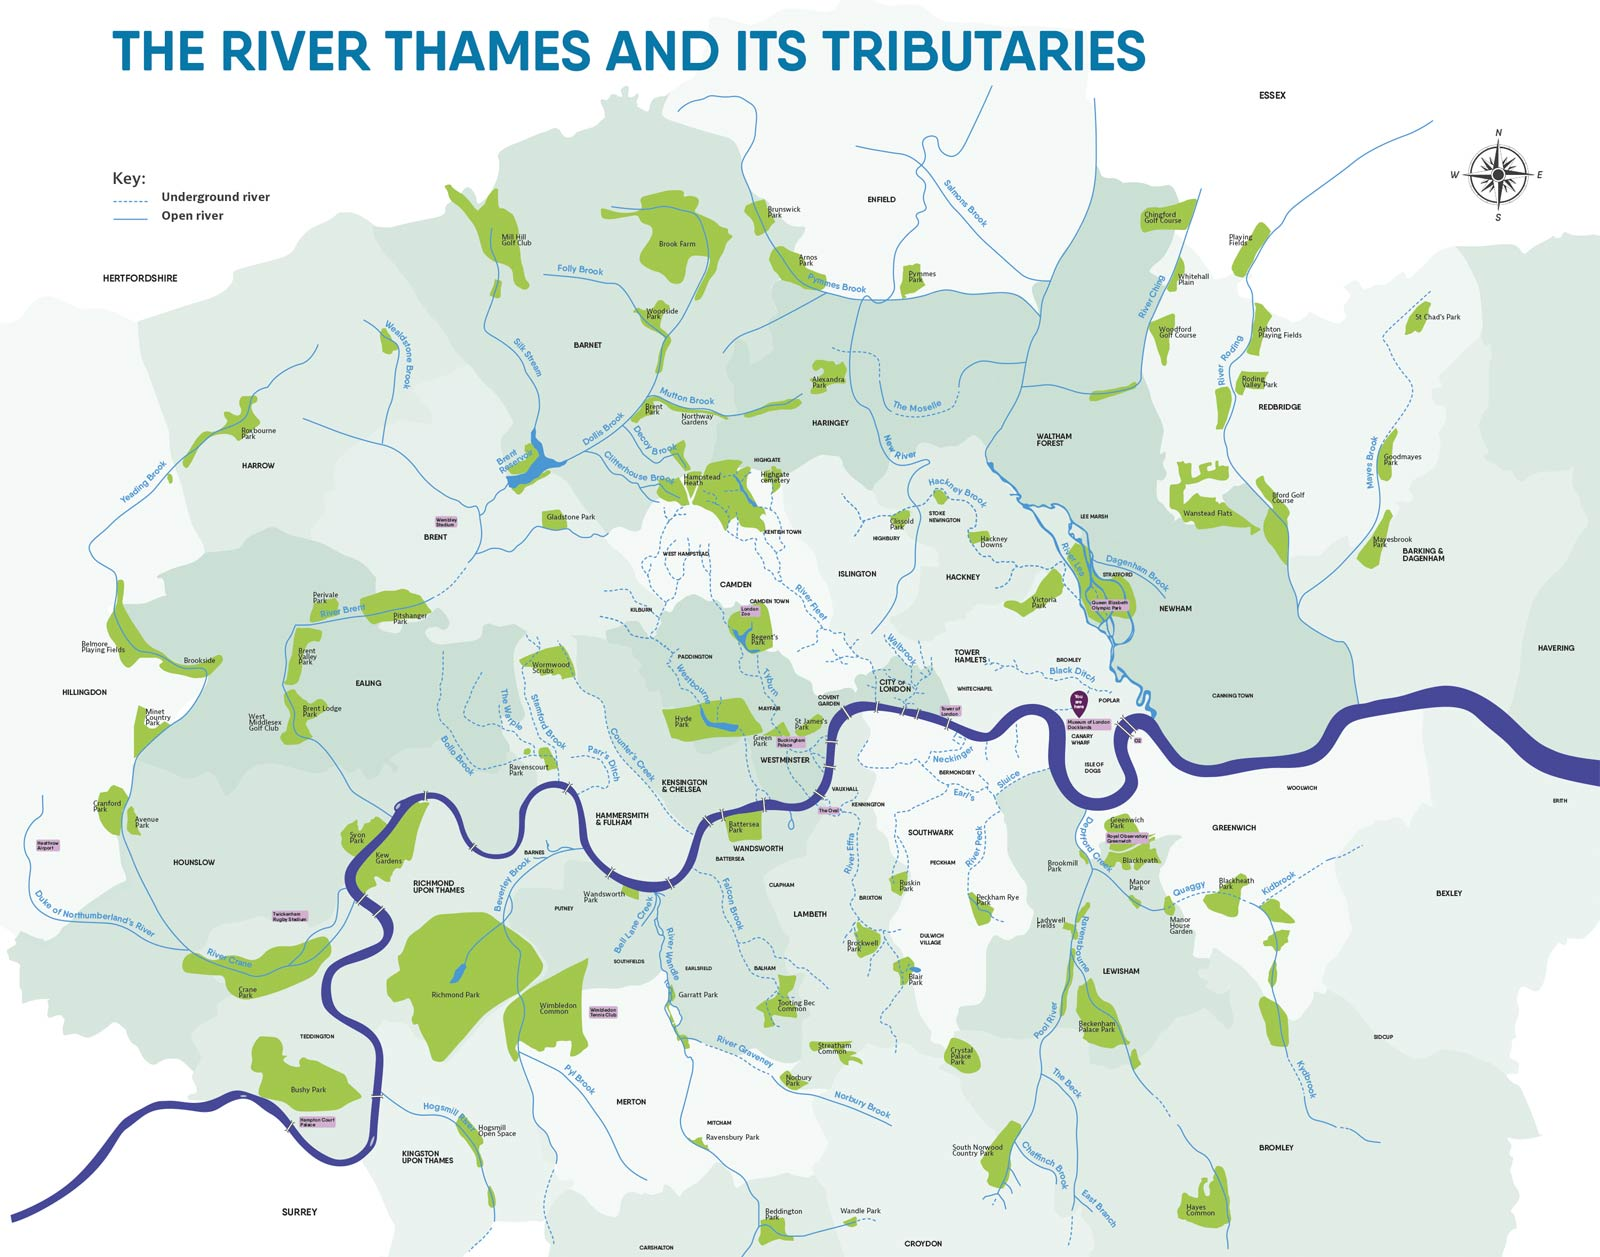 Map of the River Thames and its tributaries